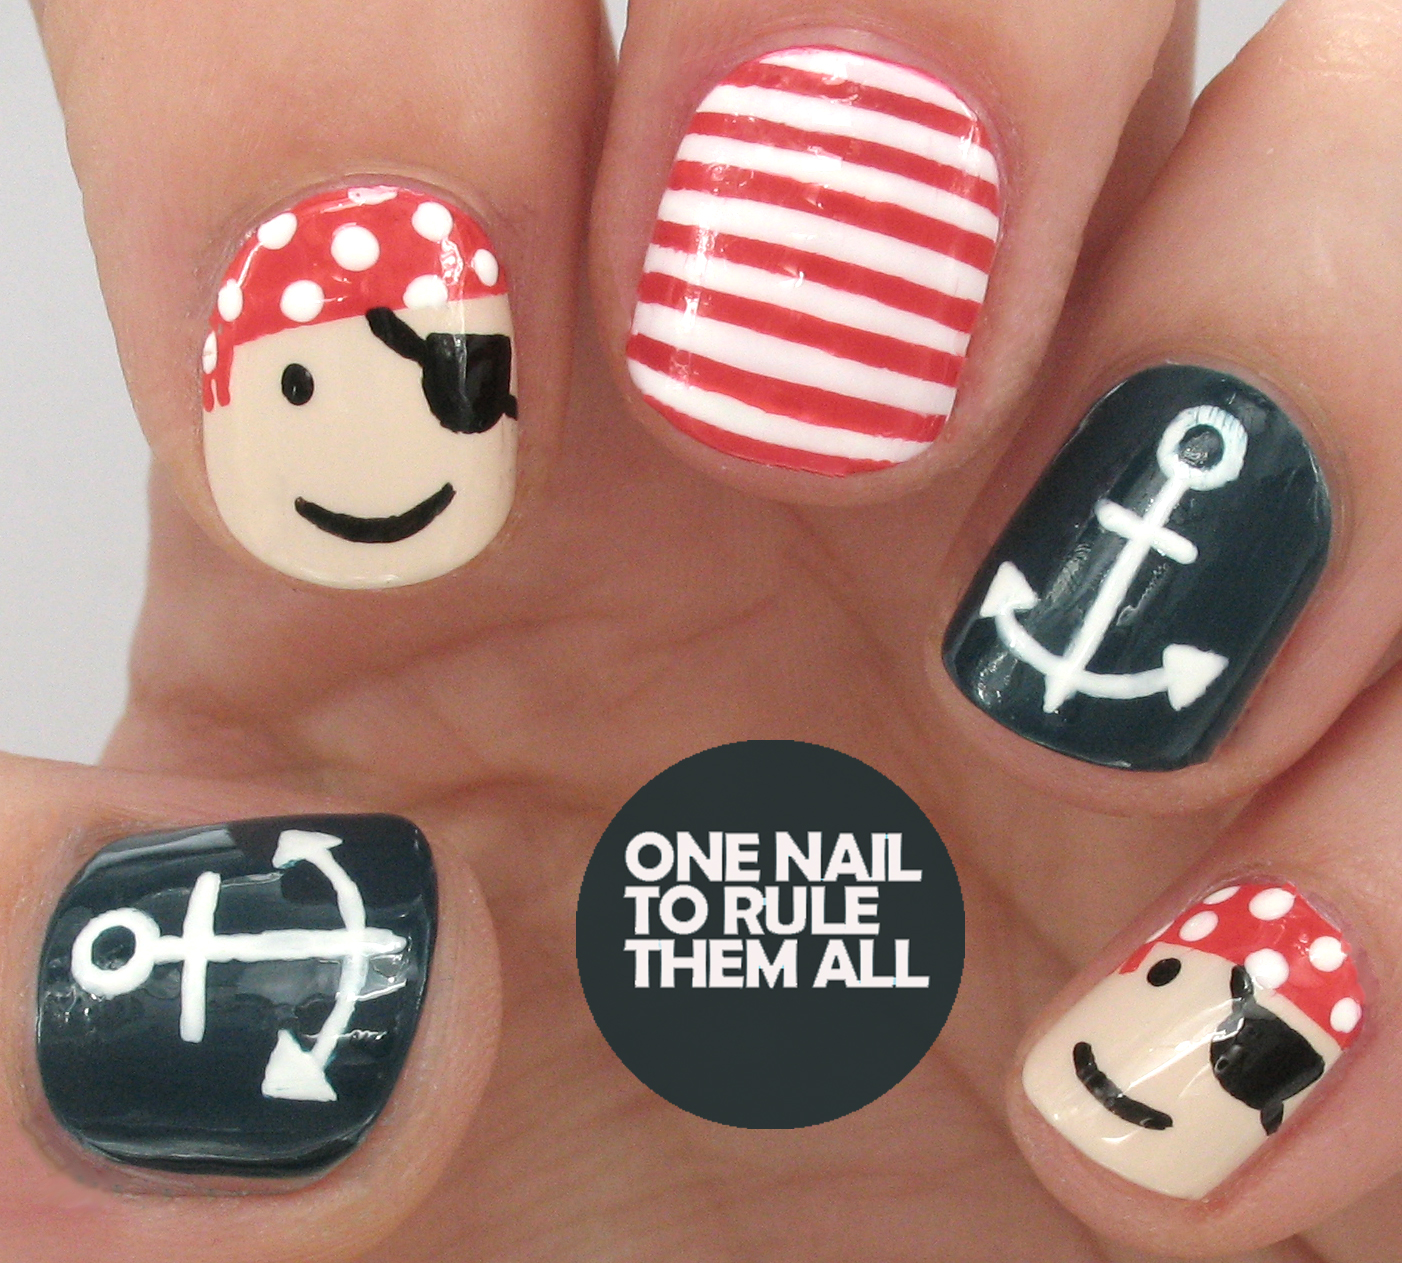 One Nail To Rule Them All: Tutorial Tuesday: Pirate Nautical Nail Art for  Divine Caroline - One Nail To Rule Them All: Tutorial Tuesday: Pirate Nautical Nail